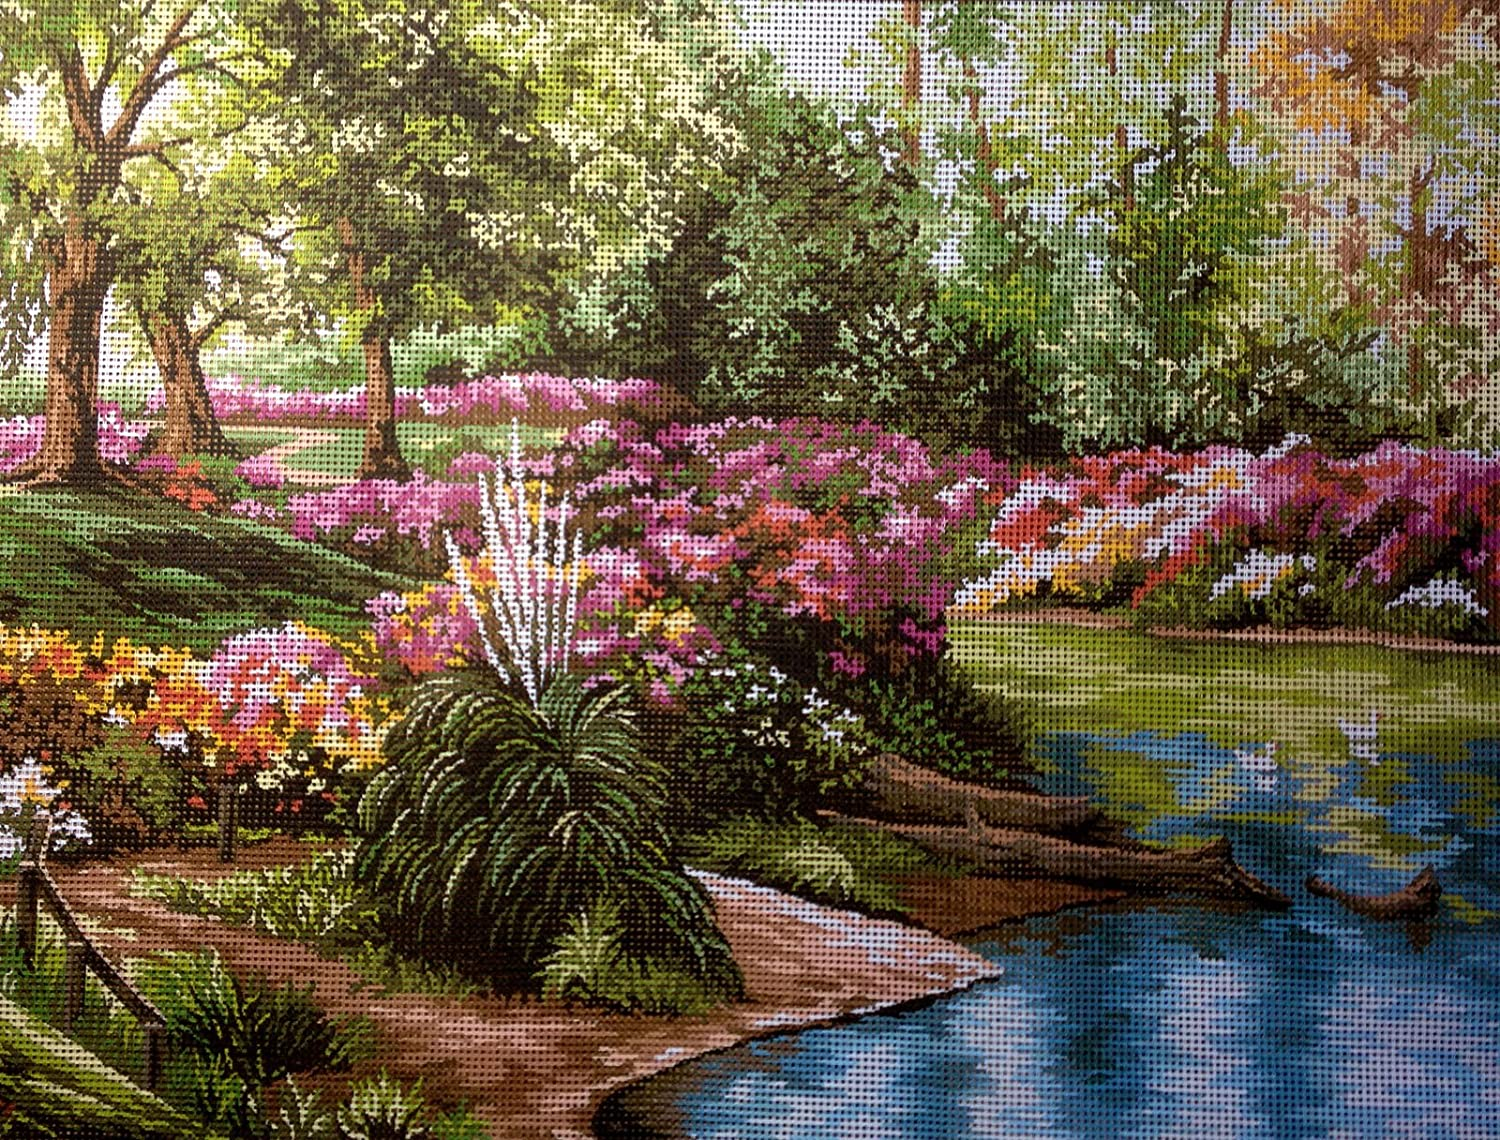 hudema's Max 50% OFF Needlepoint Kit The Pond Manufacturer OFFicial shop Printed 15.7